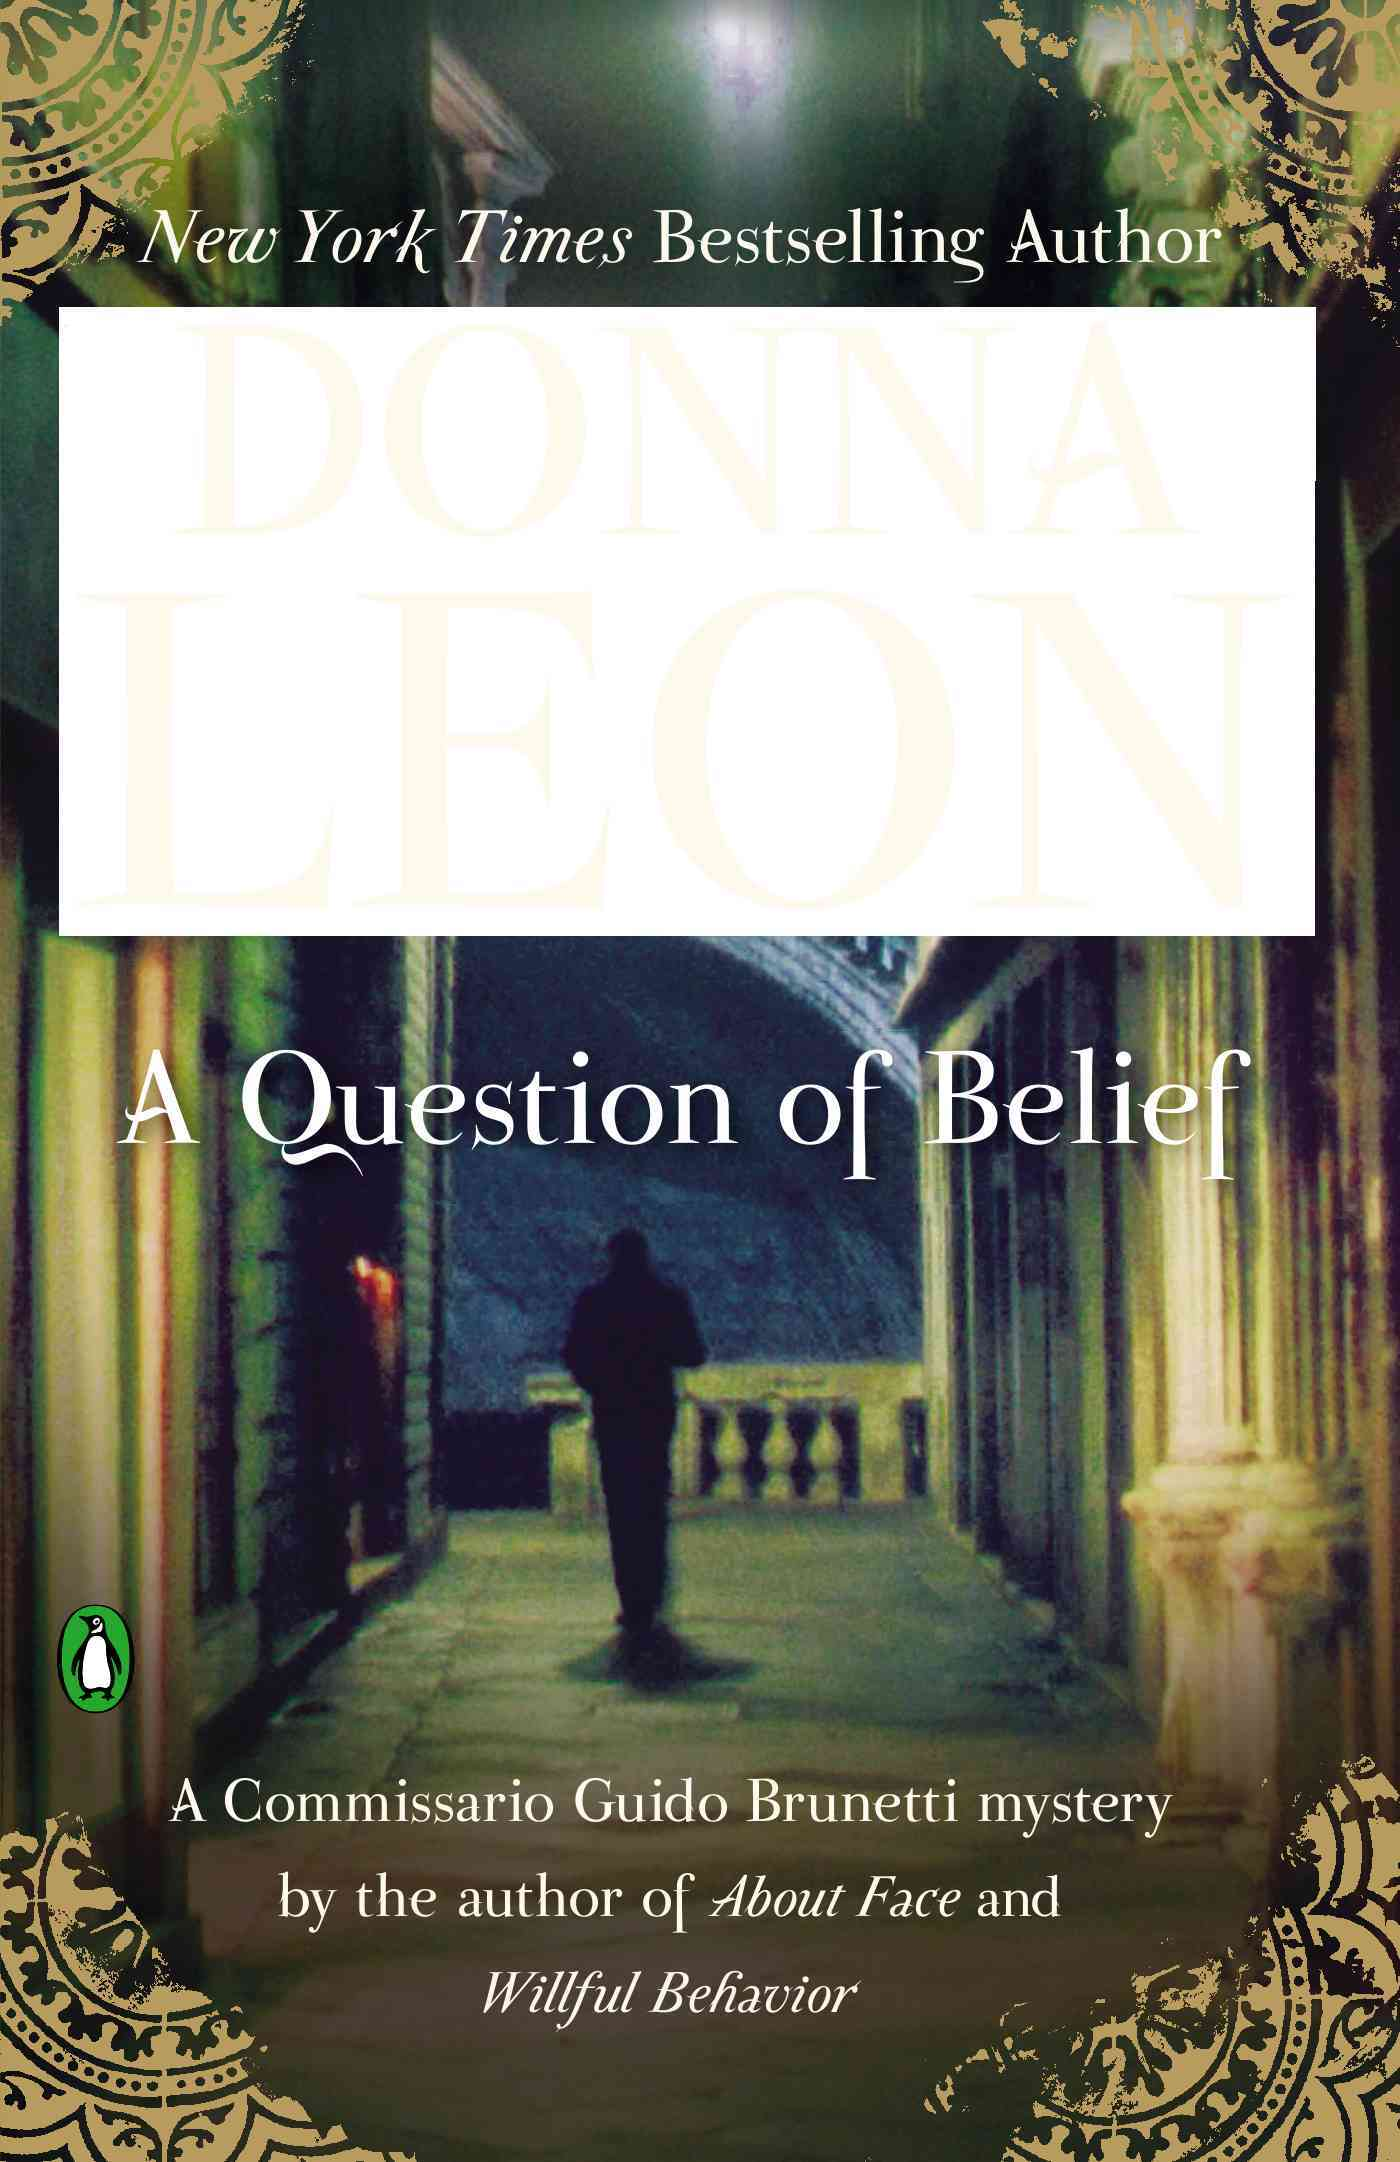 A Question of Belief By Leon, Donna